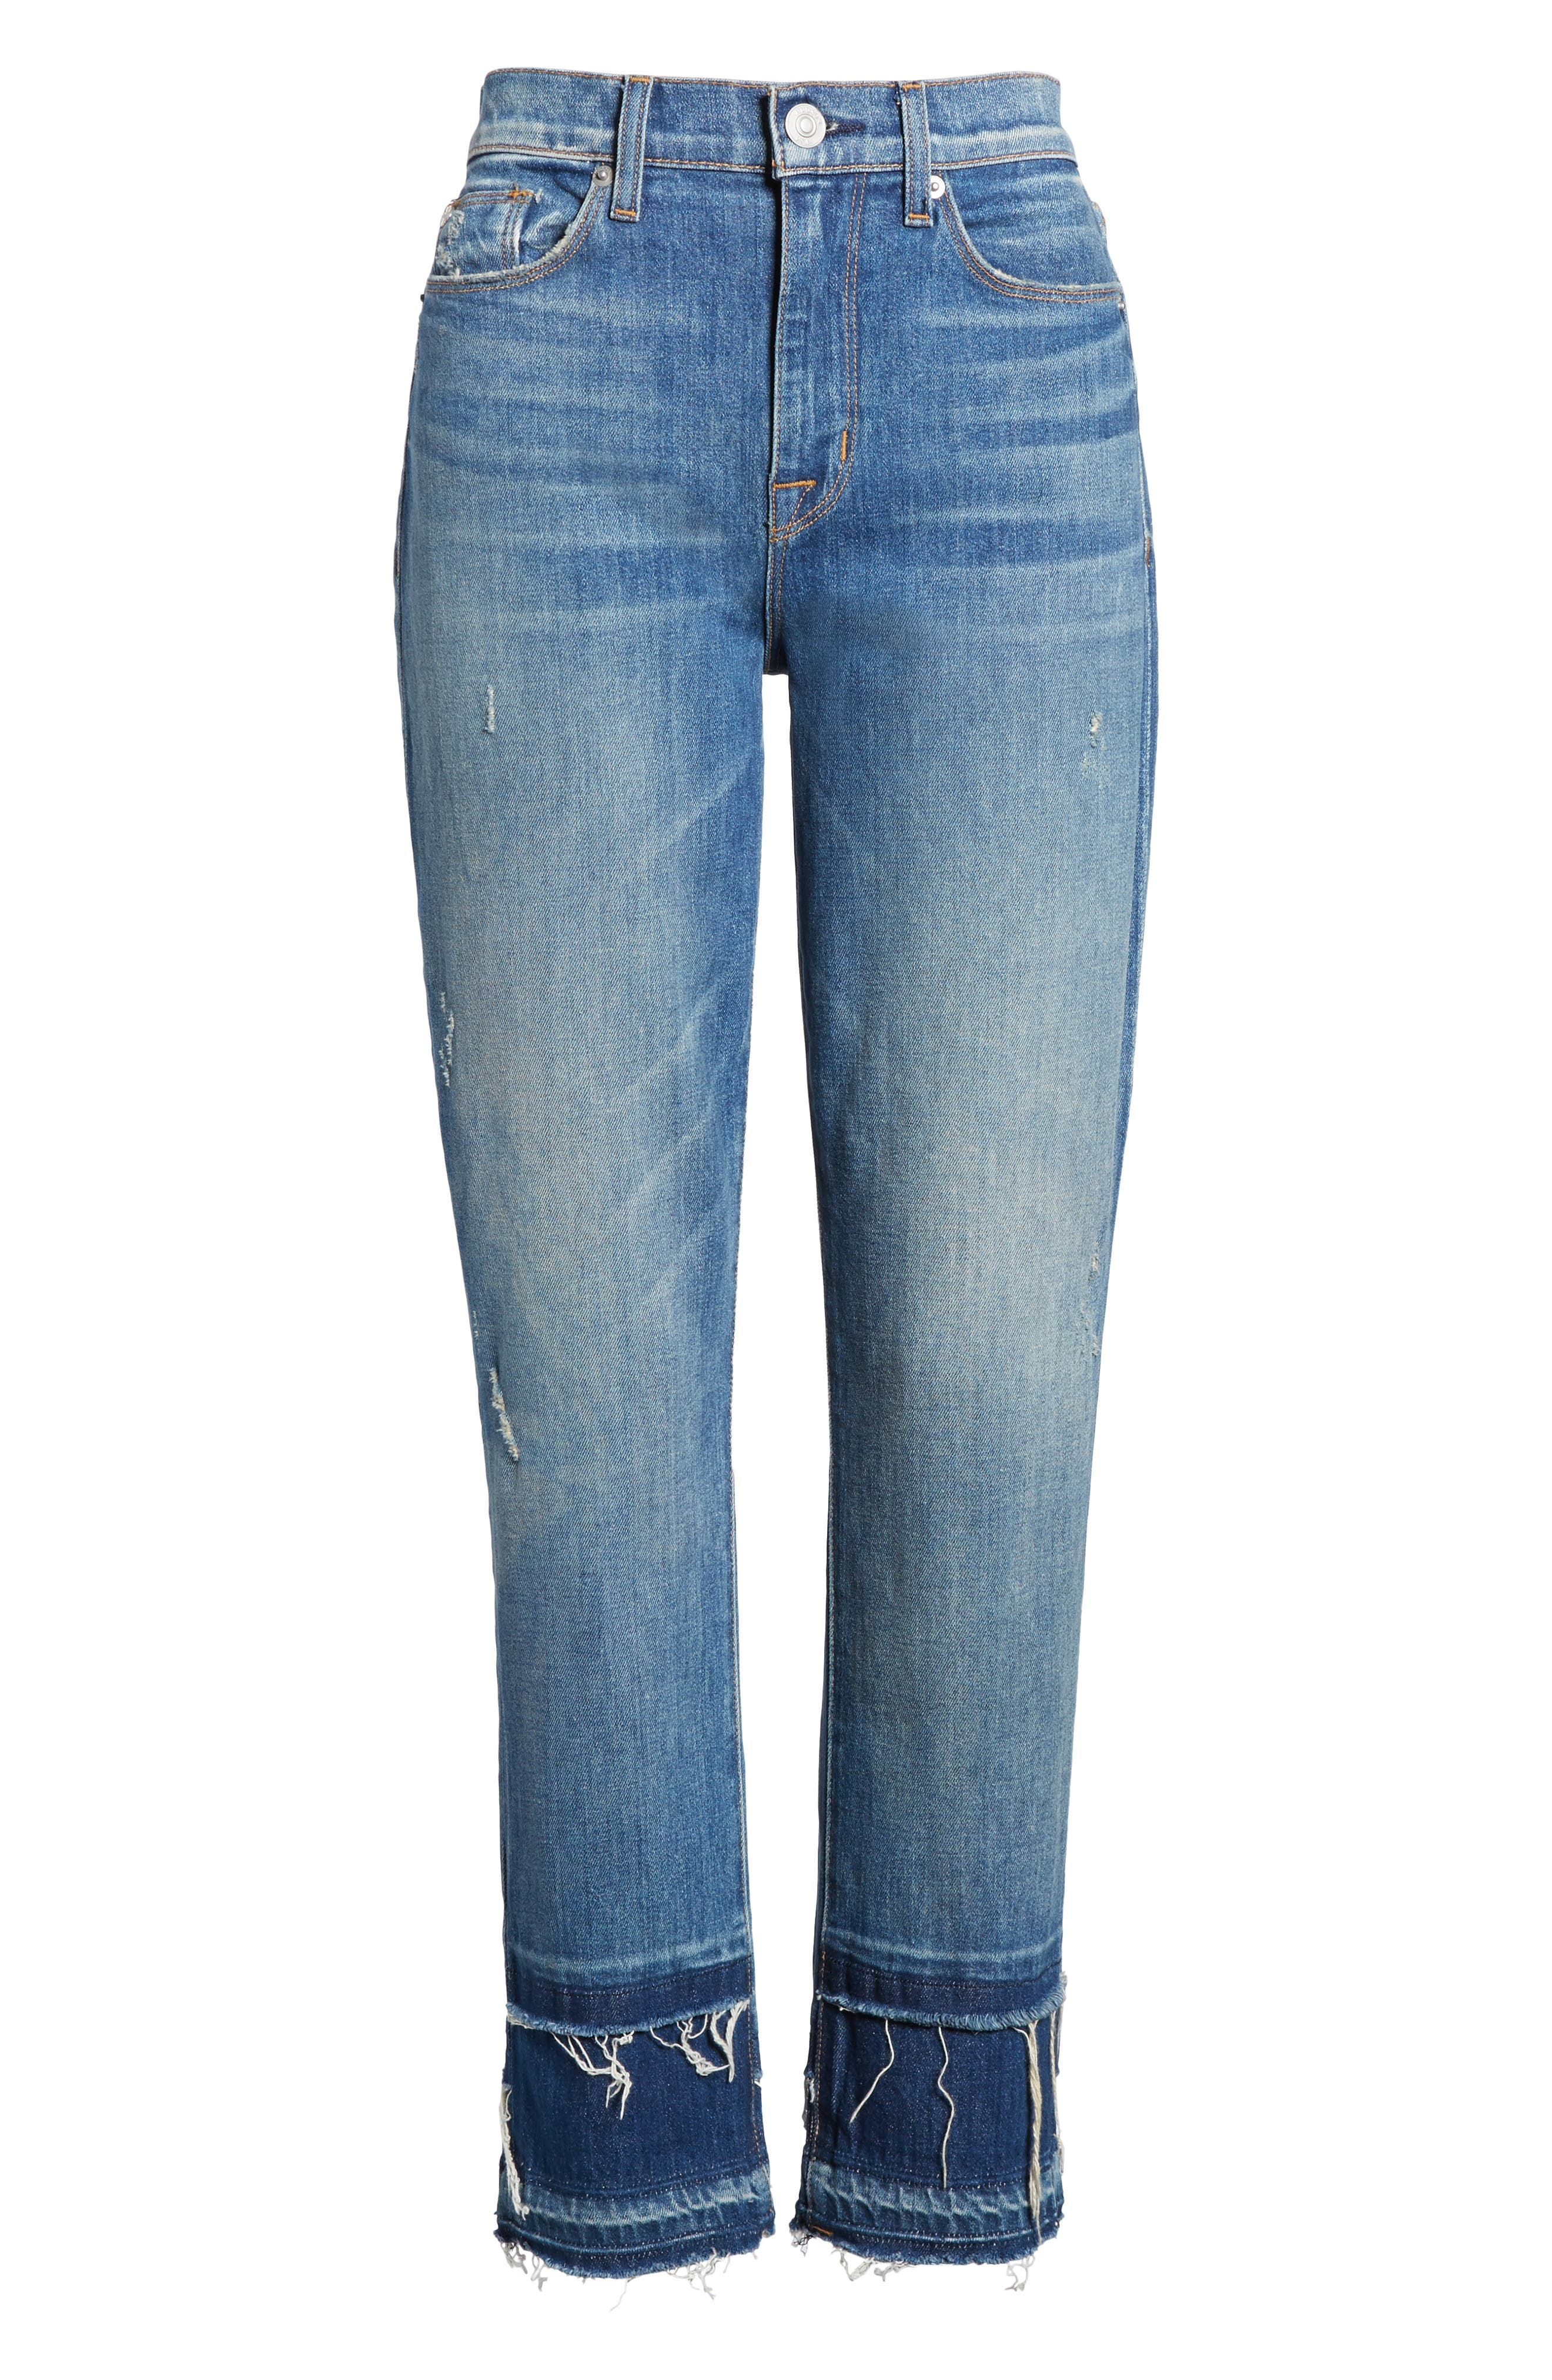 Zoeey High Waist Crop Straight Leg Jeans,                             Alternate thumbnail 7, color,                             Social Grace